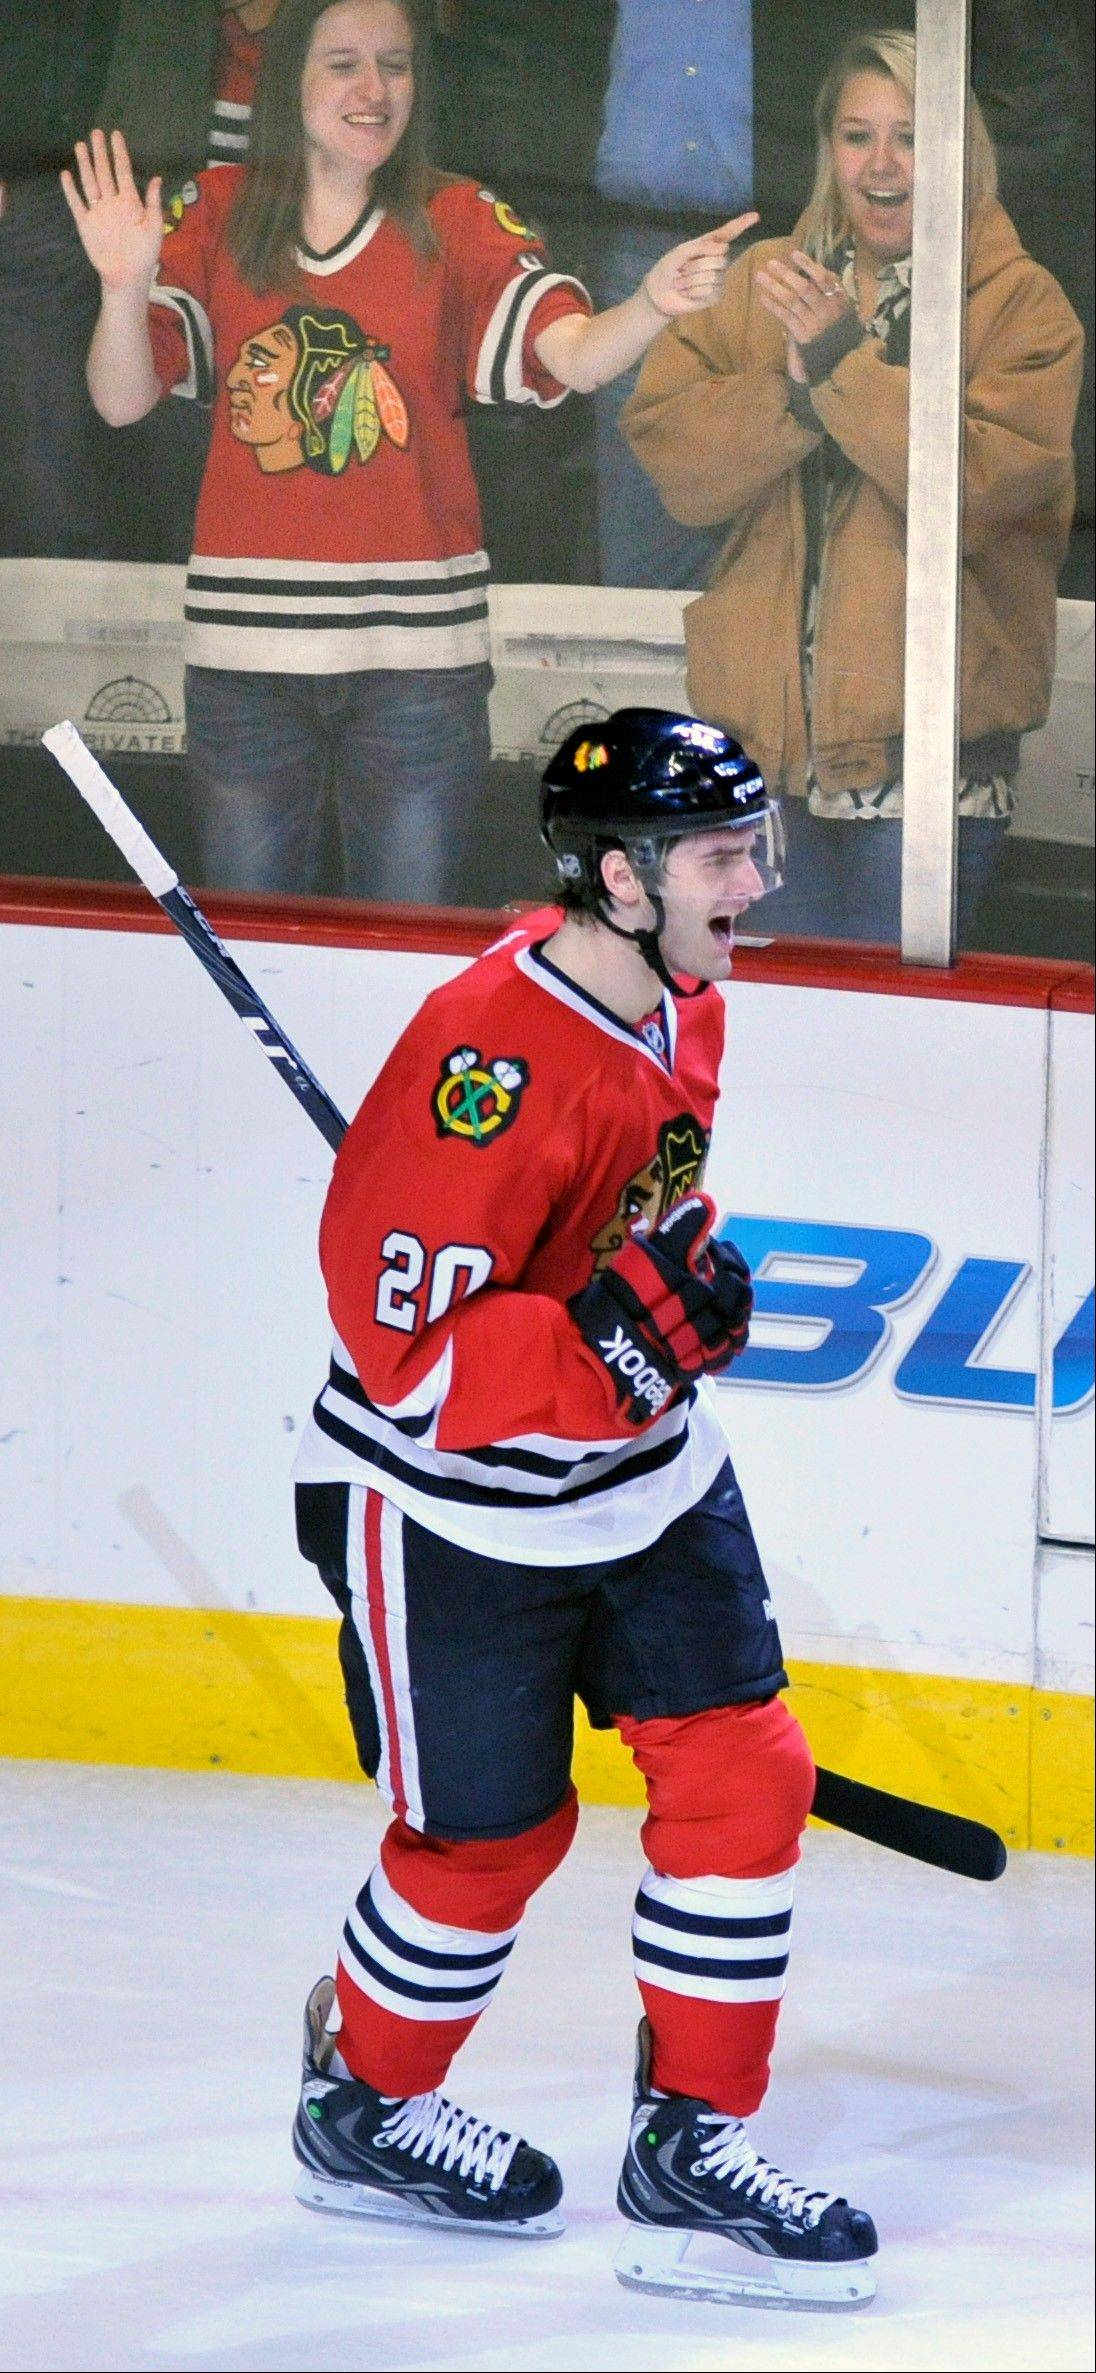 The Blackhawks' Brandon Saad celebrates after scoring the winning goal against the Detroit Red Wings during a shootout.